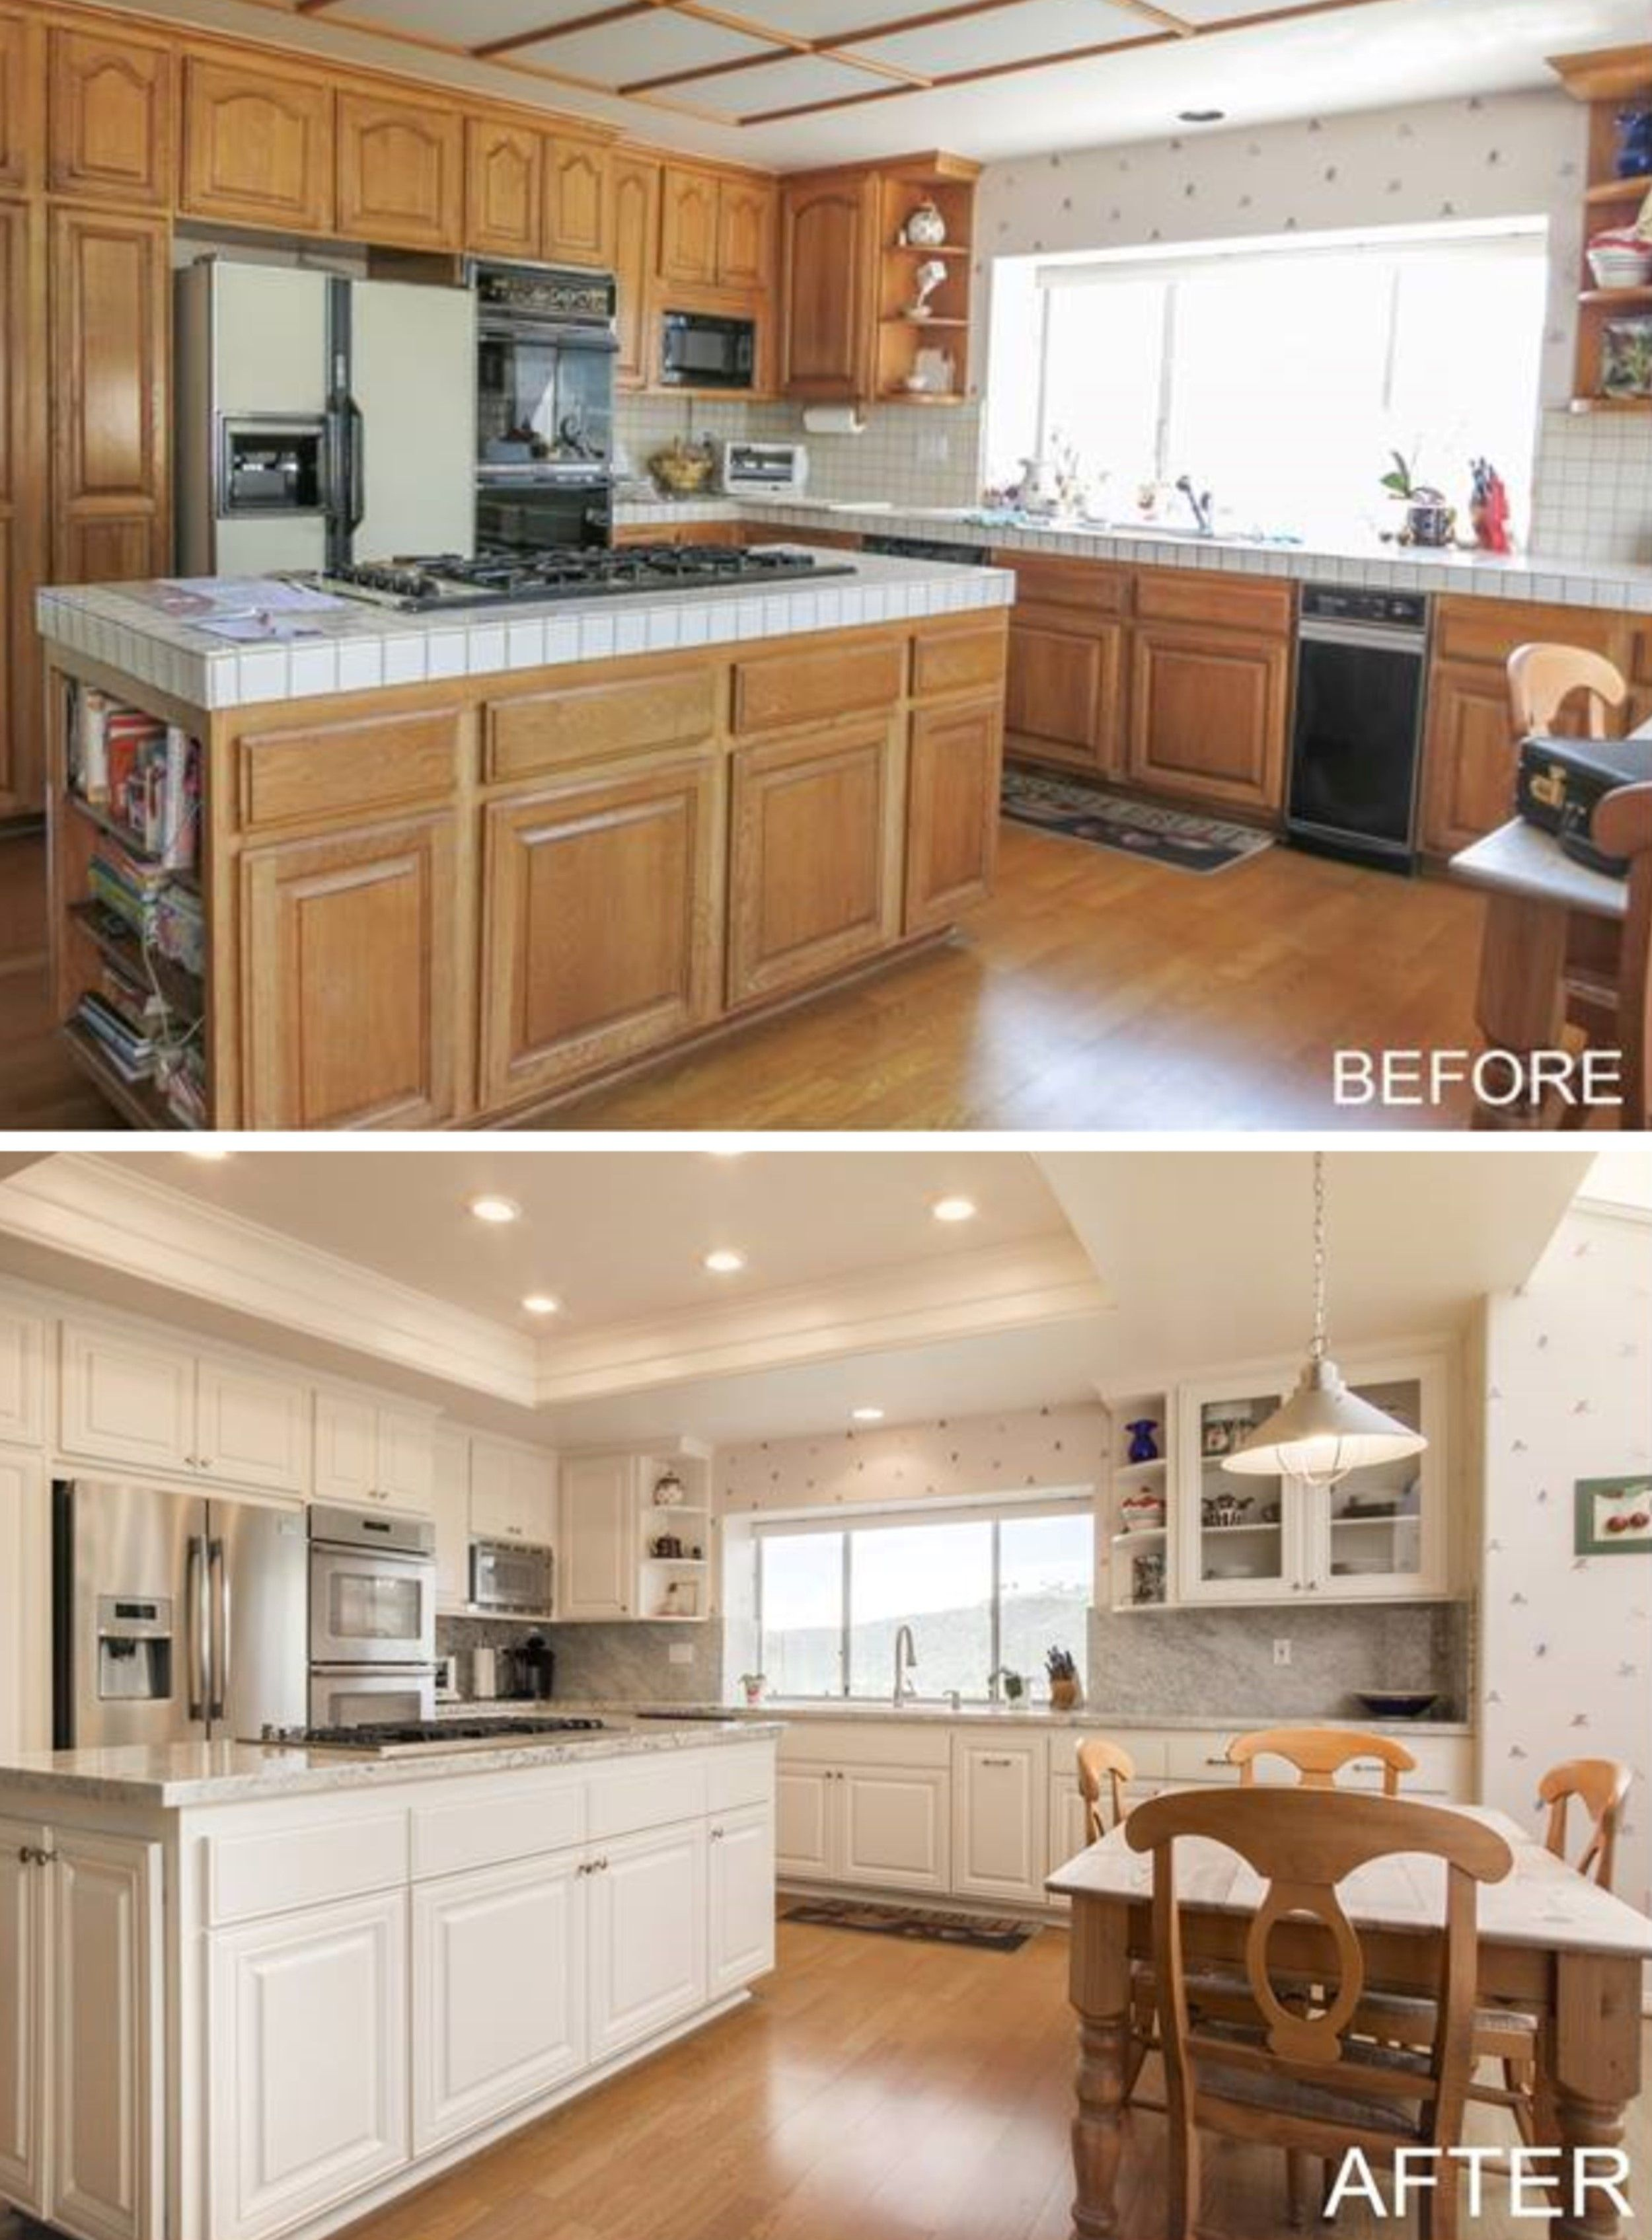 Kitchen Cabinet Refacing Before And After Refacing Kitchen Cabinets Kitchen Cabinets Cabinet Refacing